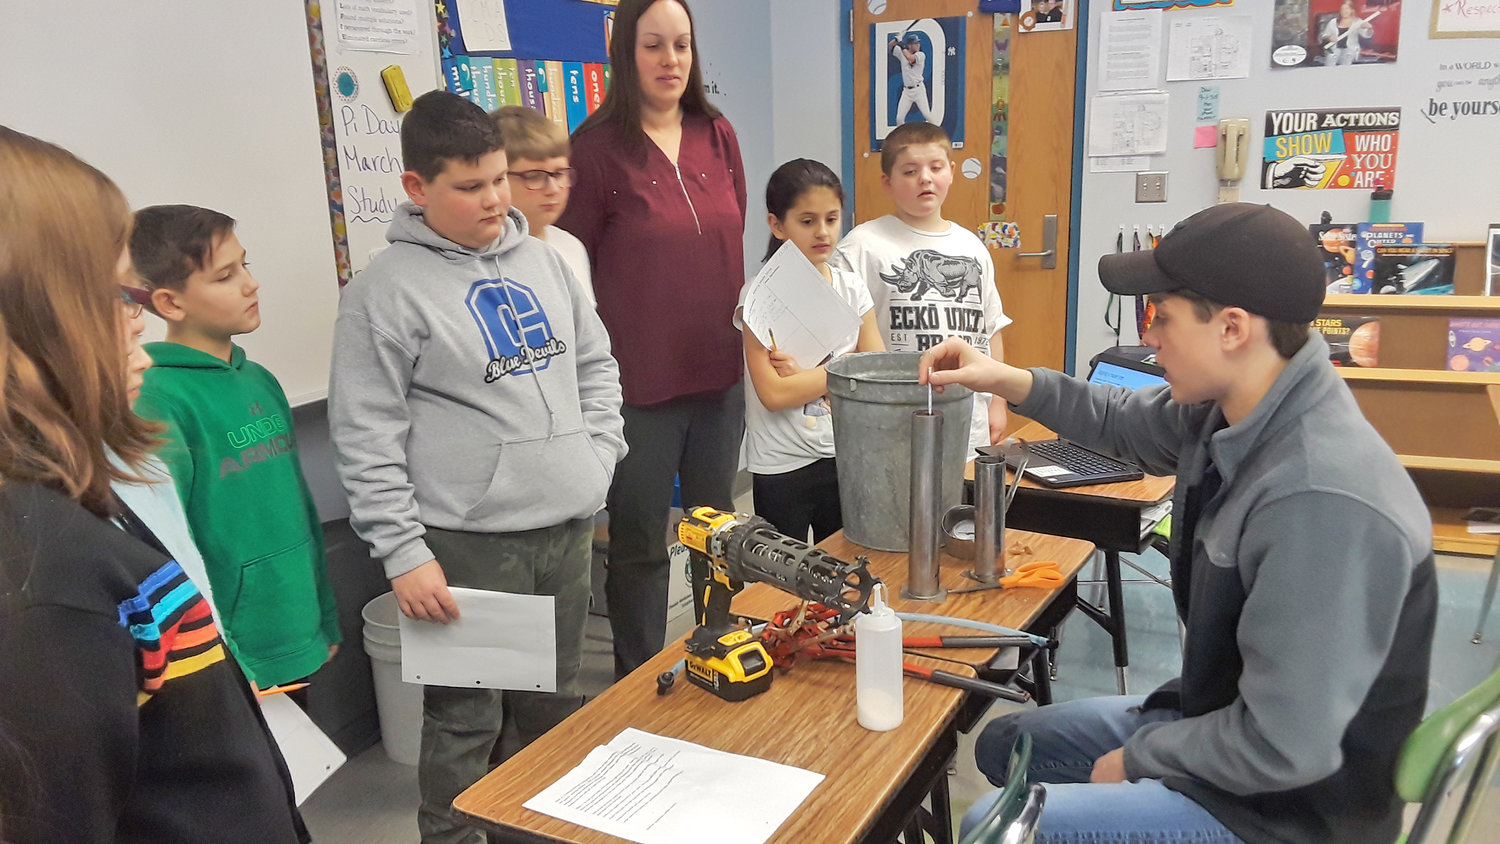 MAPLE PRODUCTION STEPS — Vernon-Verona-Sherrill FFA student Peter Makarchuk, at right, explains a hydrometer to Camden Middle School students, as part of a presentation on how maple syrup is made.